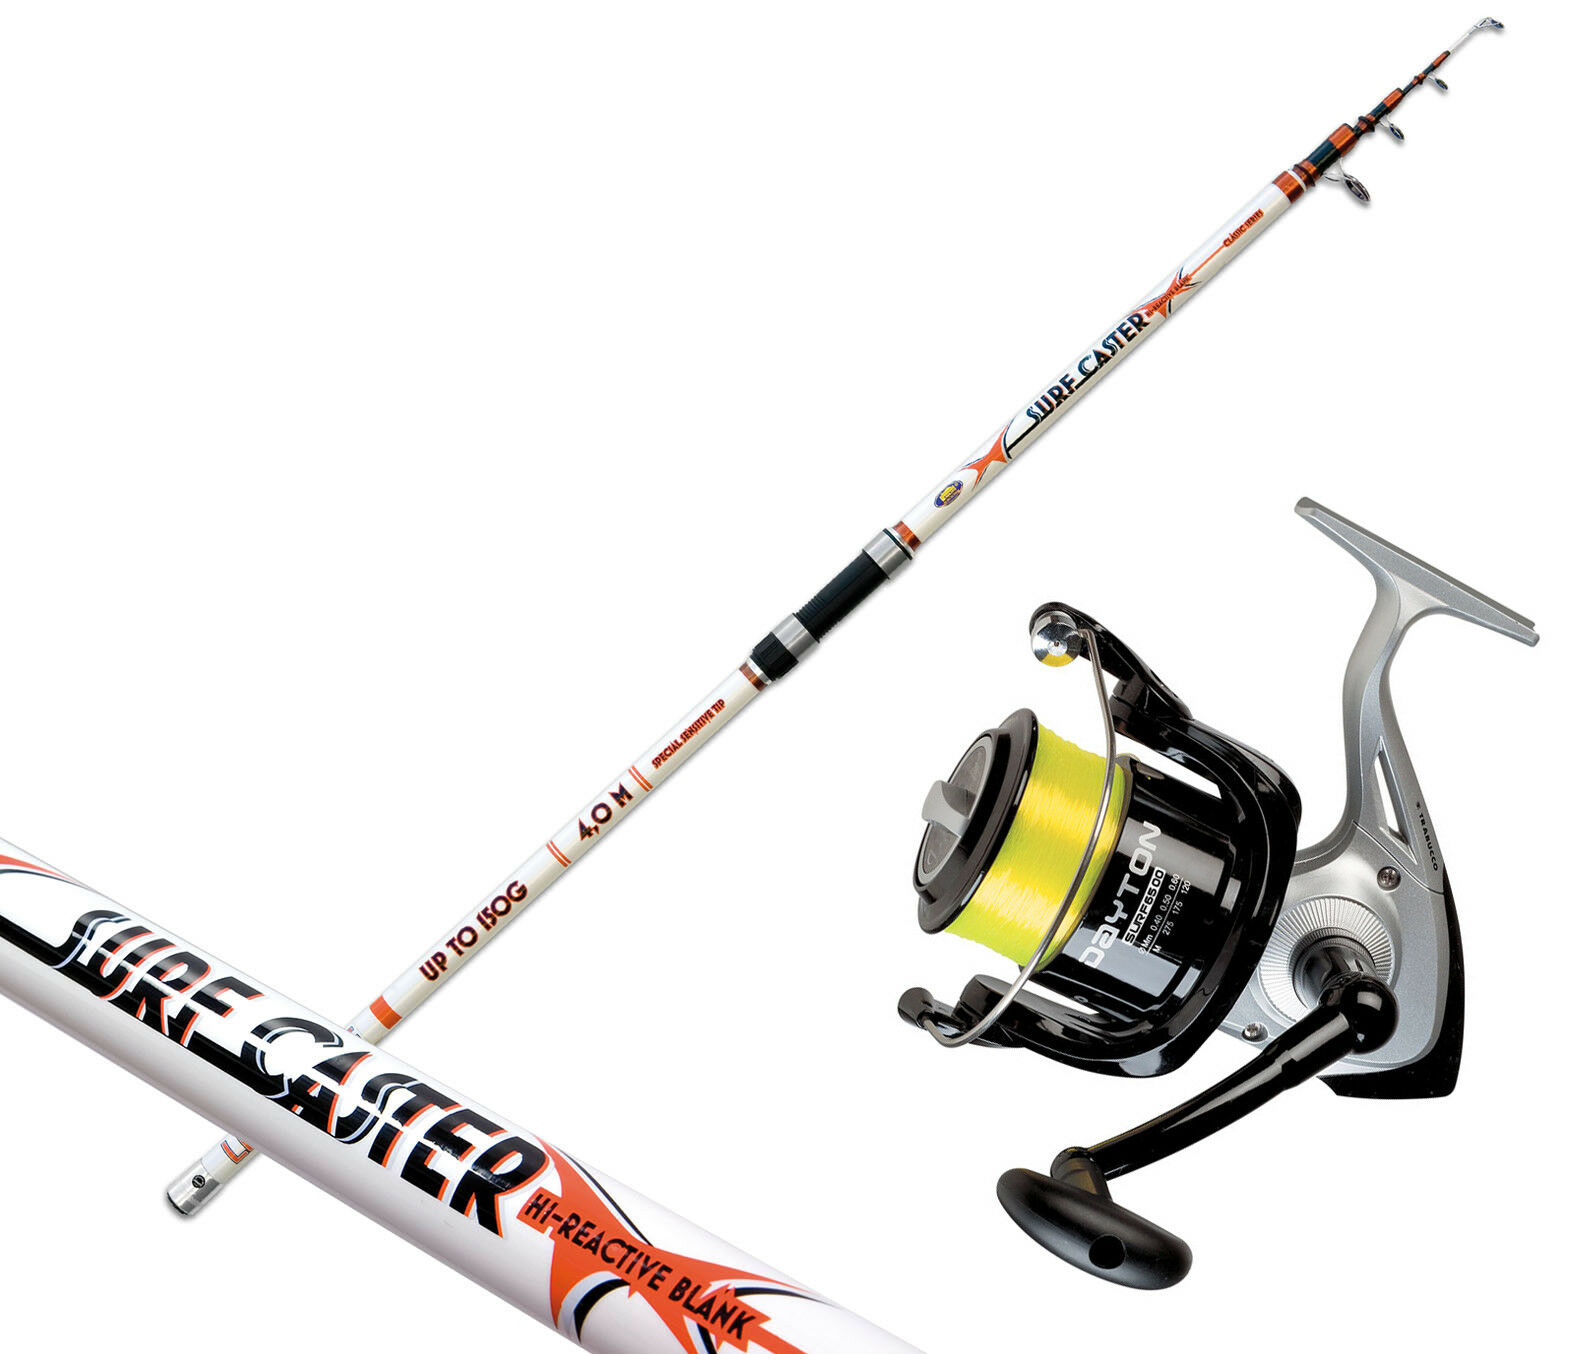 KP3196 Kit Pesca Surfcasting Canna Surfcaster 4 m + Mulinello Dayton 6500 RN